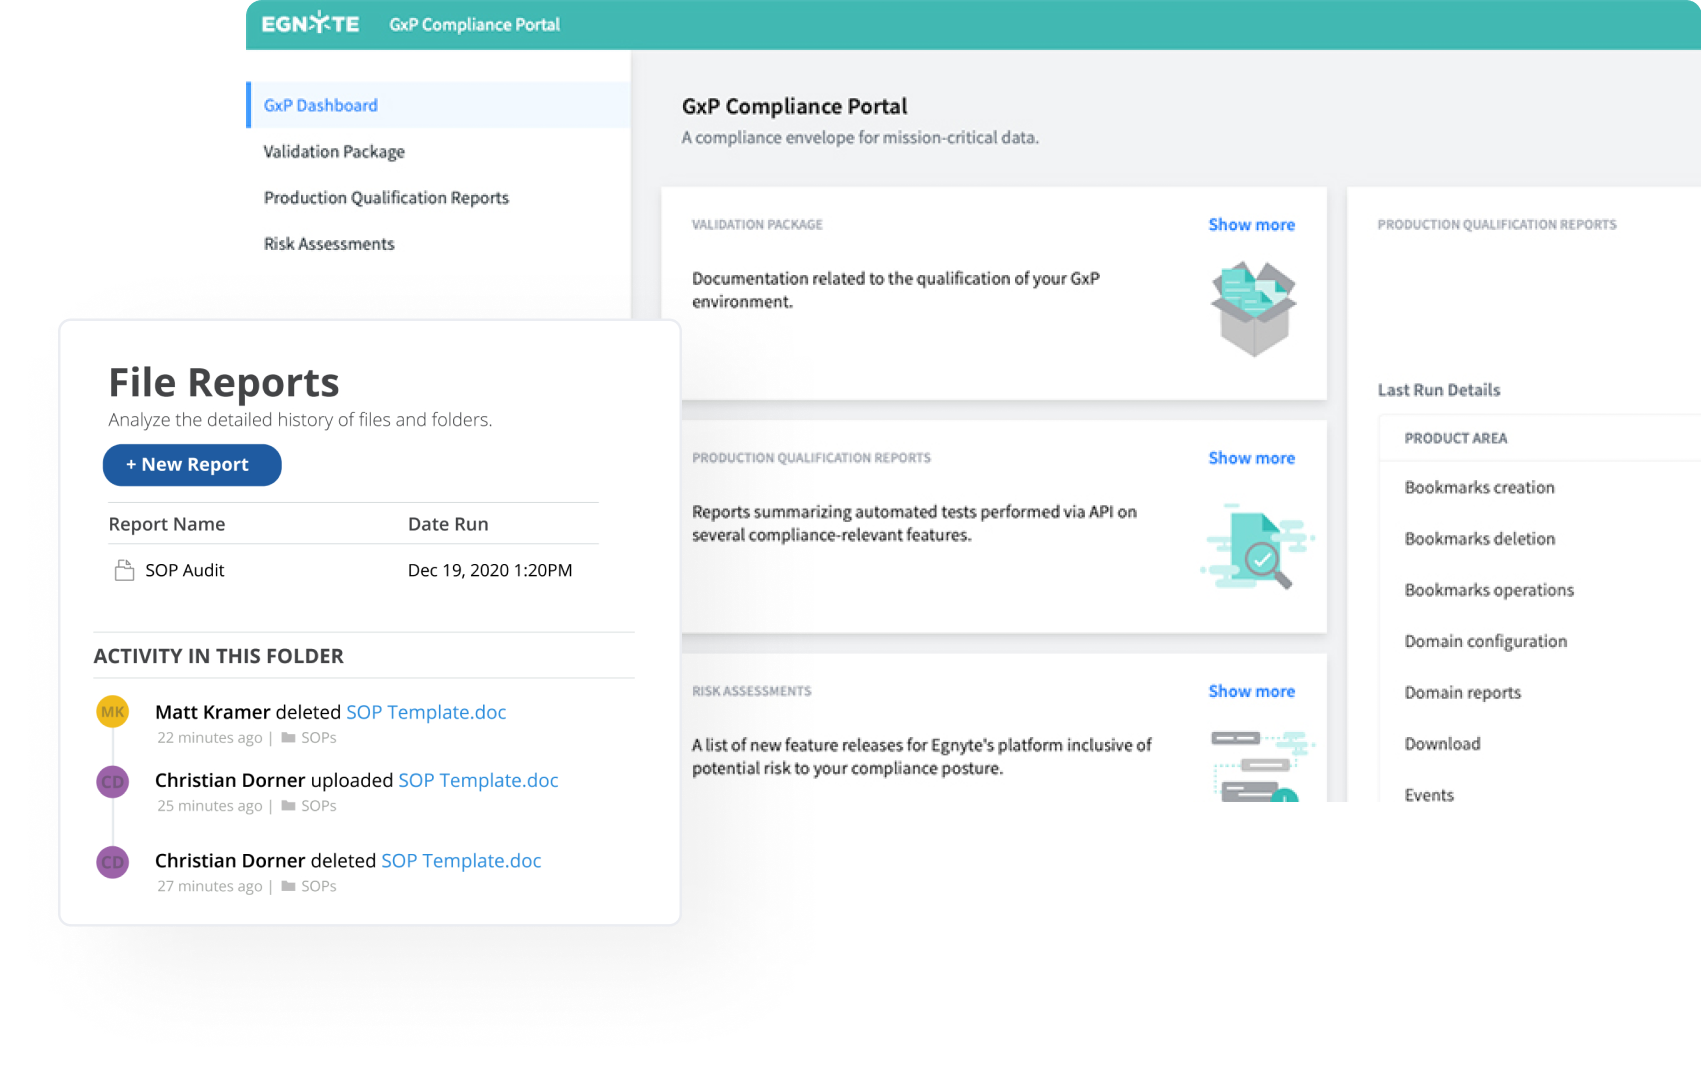 gxp compliance portal with file reports option